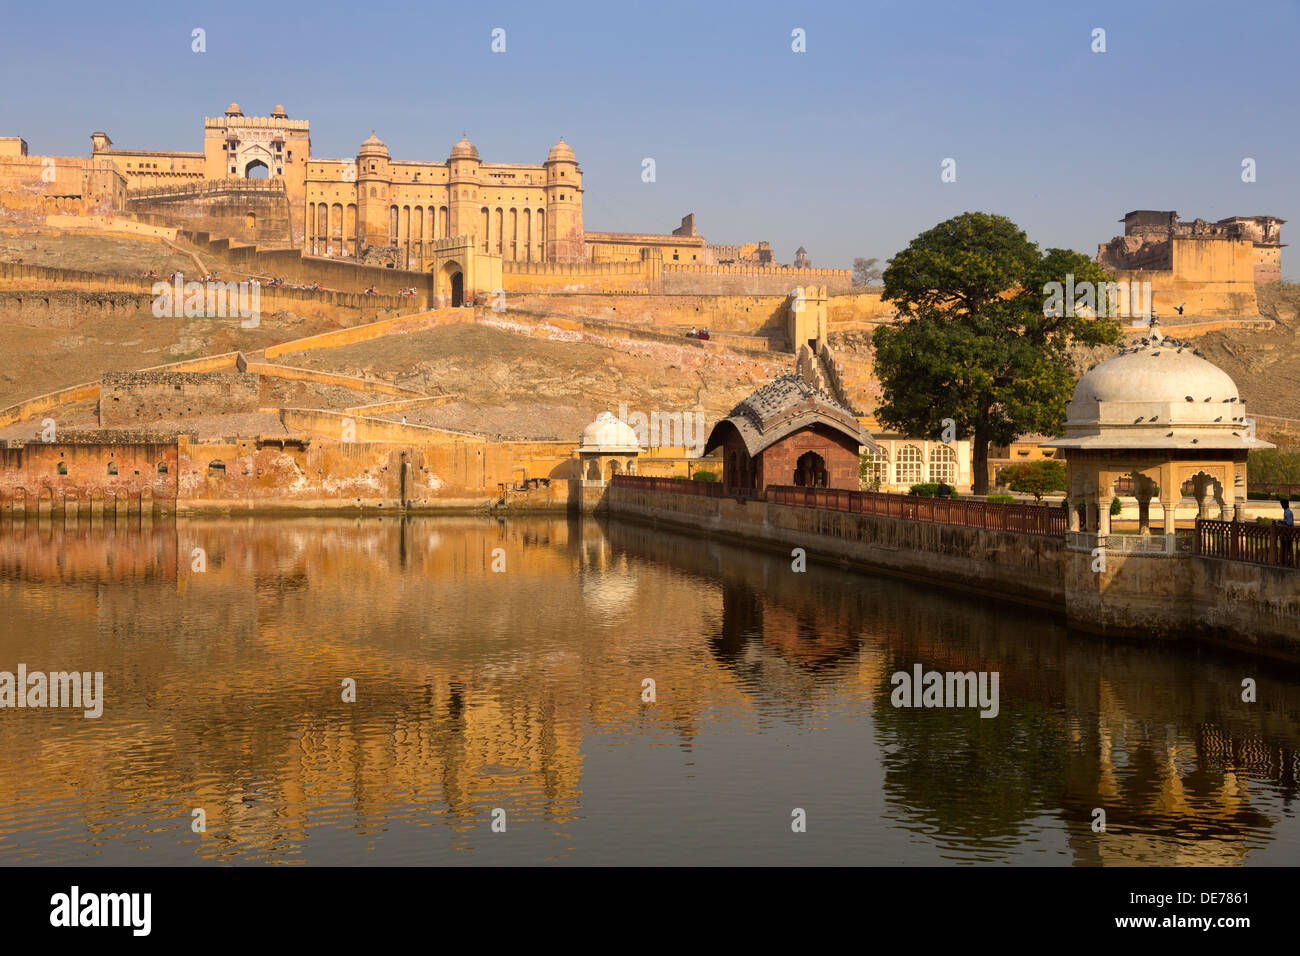 L'Inde, Rajasthan, Jaipur, Amber Palace à golden morning light Photo Stock